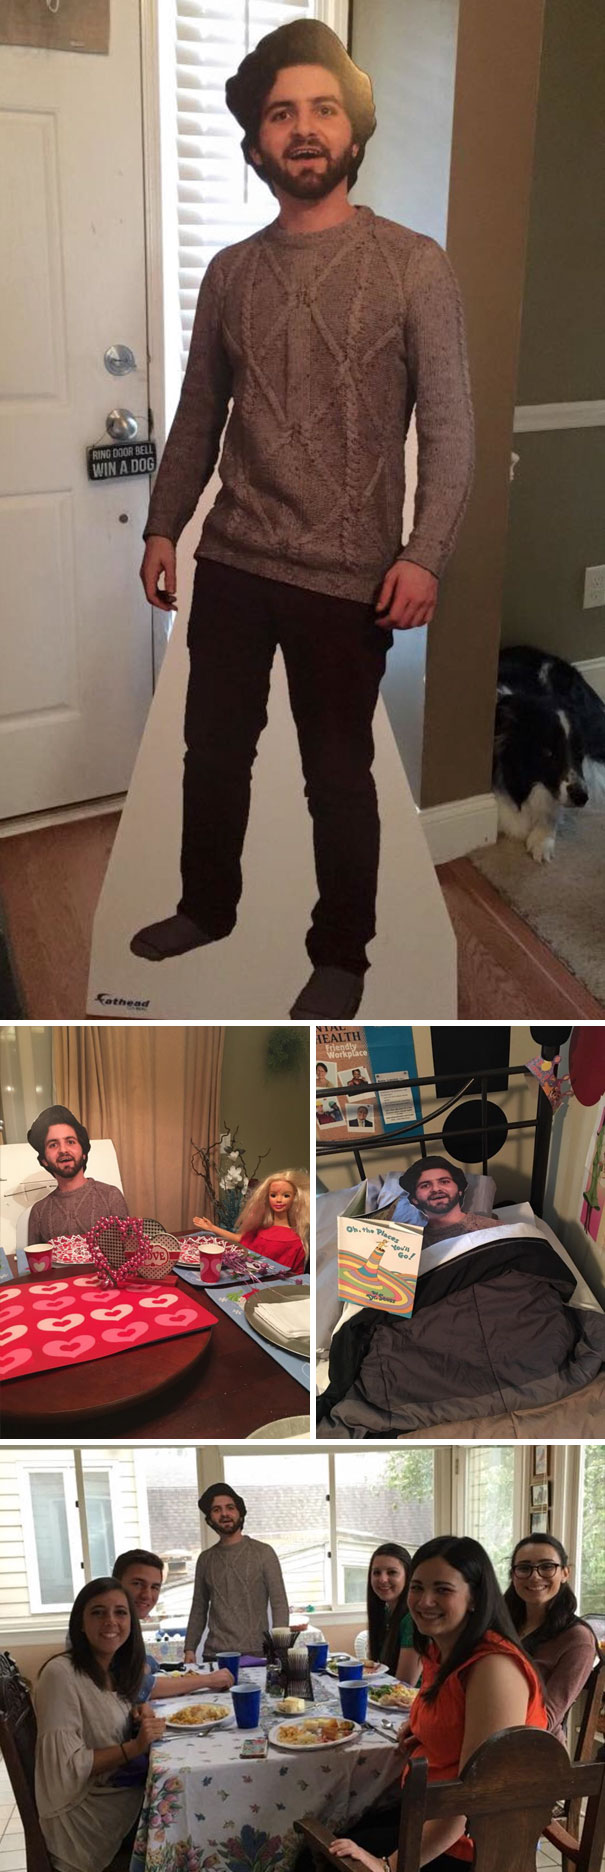 Son Studying Abroad Sent Mom Cutout Of Himself And Thought They'd Laugh And Put Somewhere In The Corner. But His Mom Decided To Take The Cutout Along To Family Gatherings